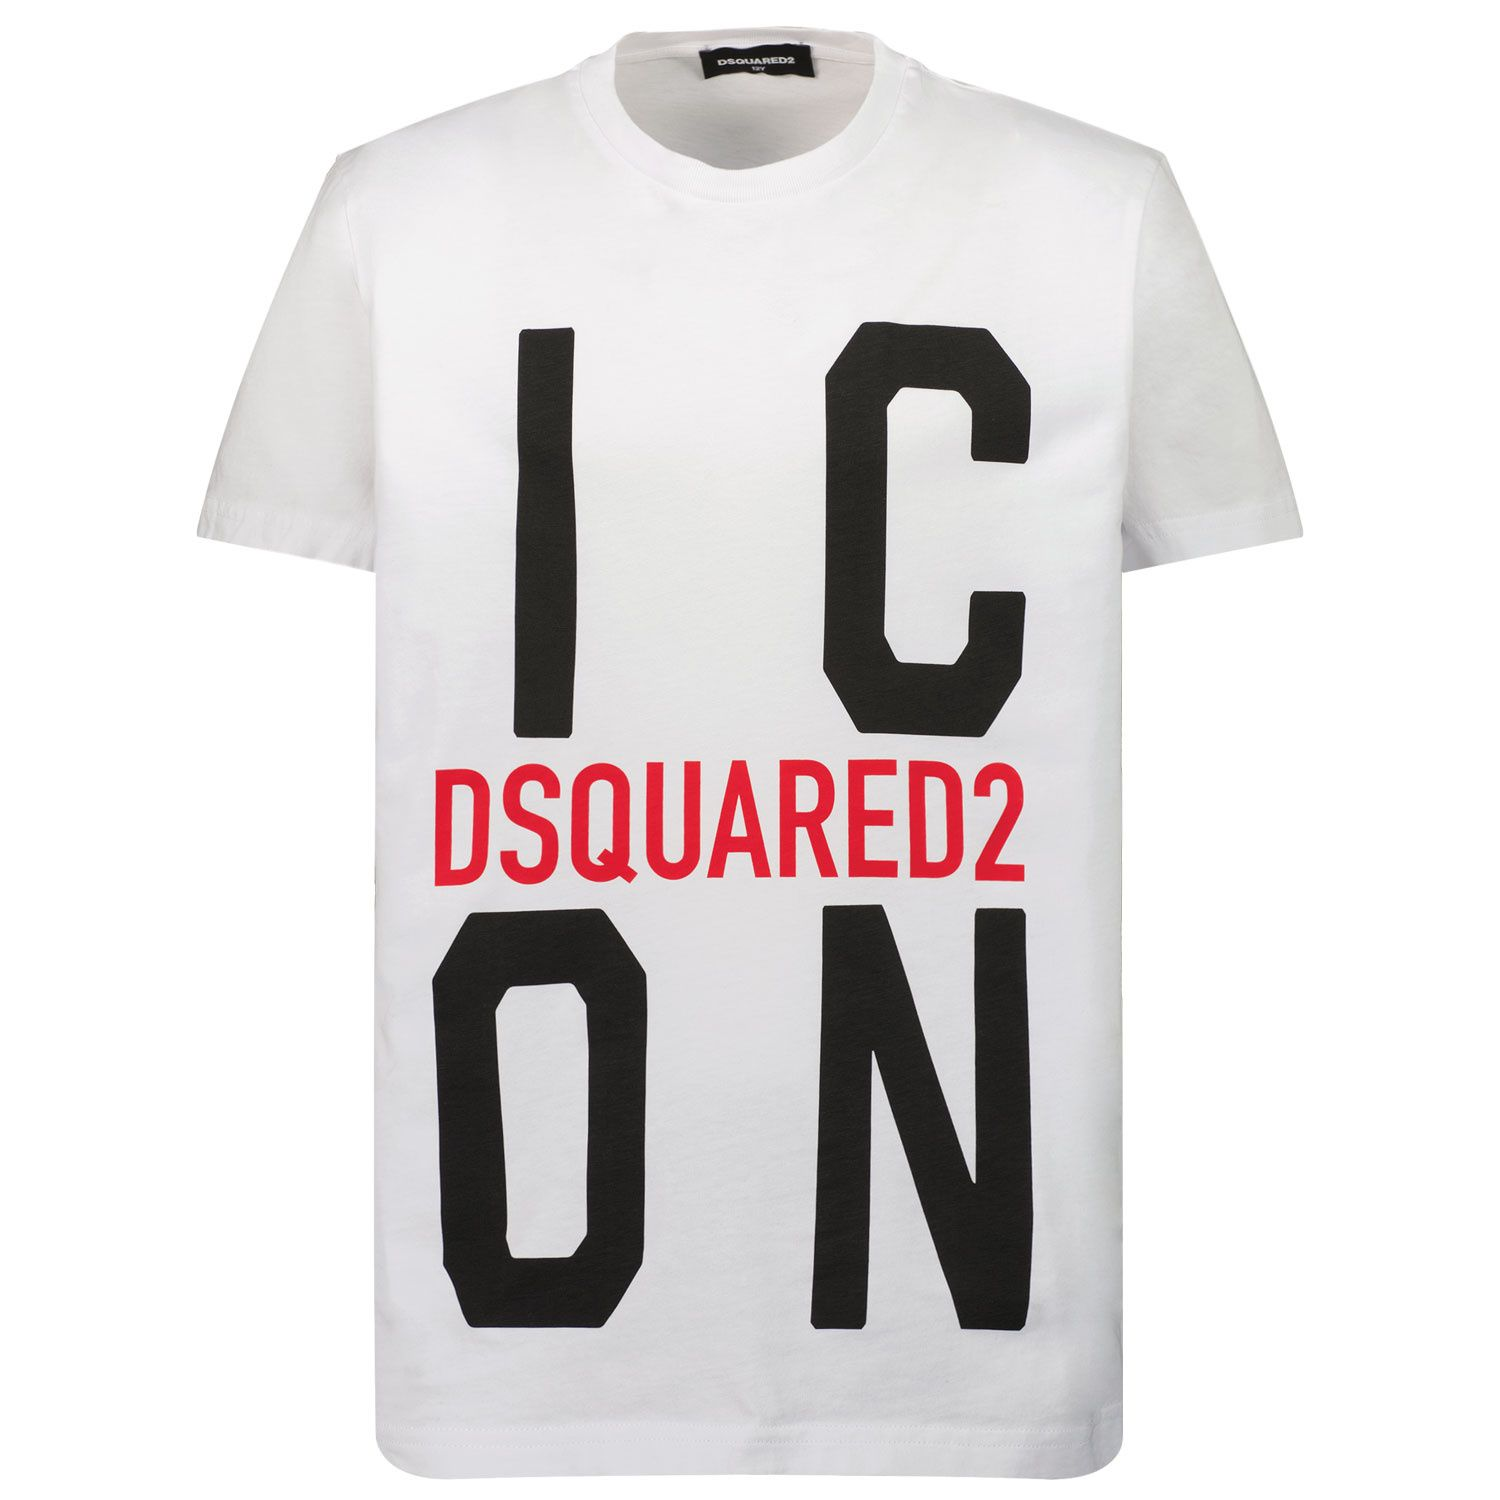 Picture of Dsquared2 DQ0243 kids t-shirt white